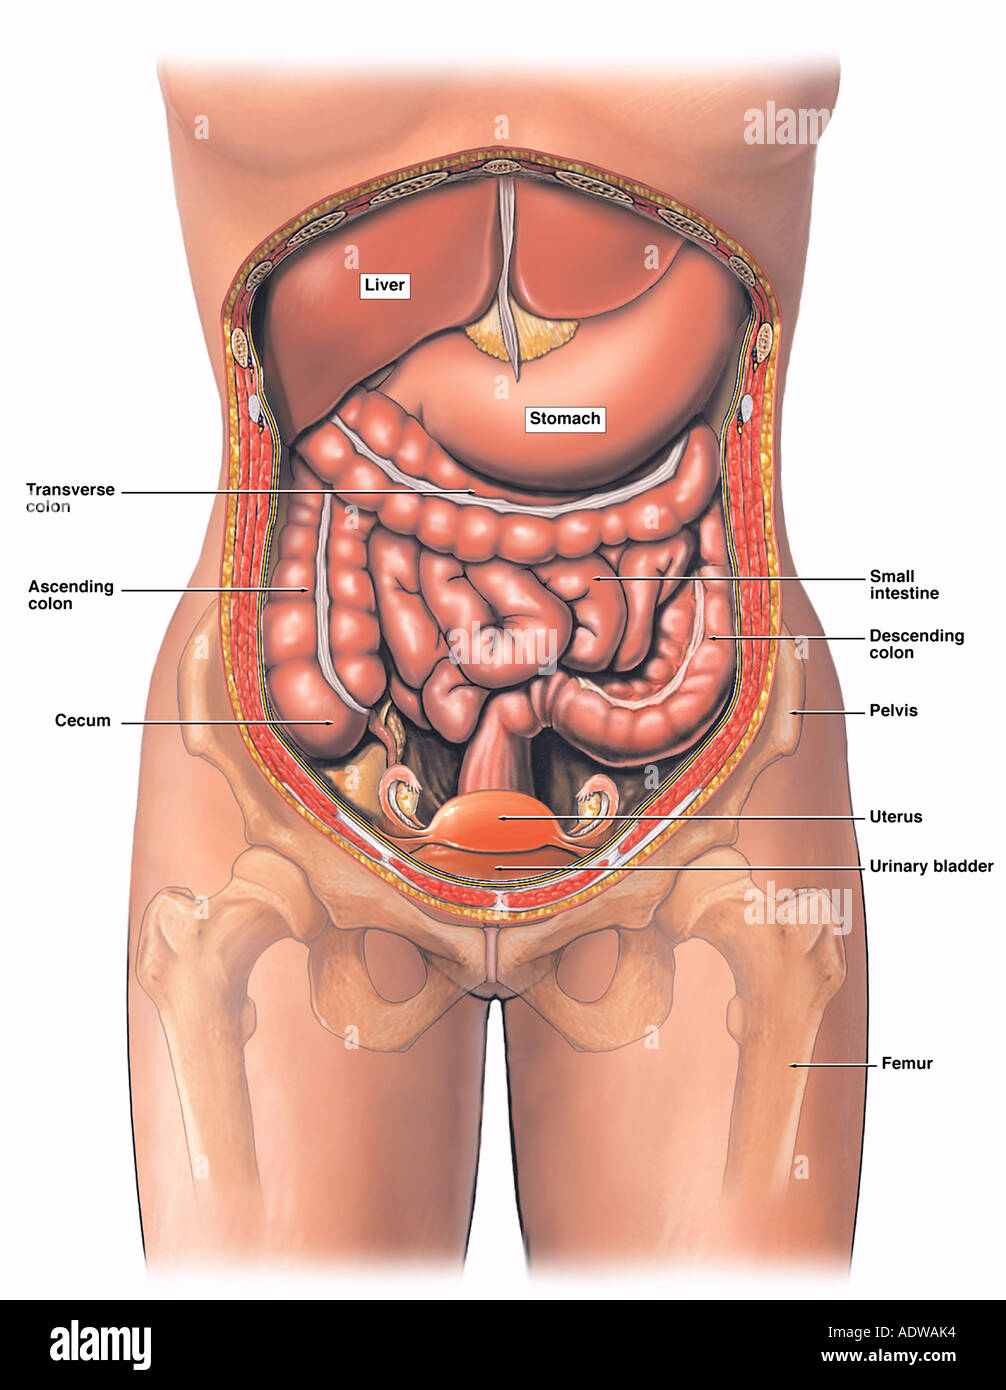 Anatomy of the Female Abdomen and Pelvis Stock Photo: 7712947 - Alamy